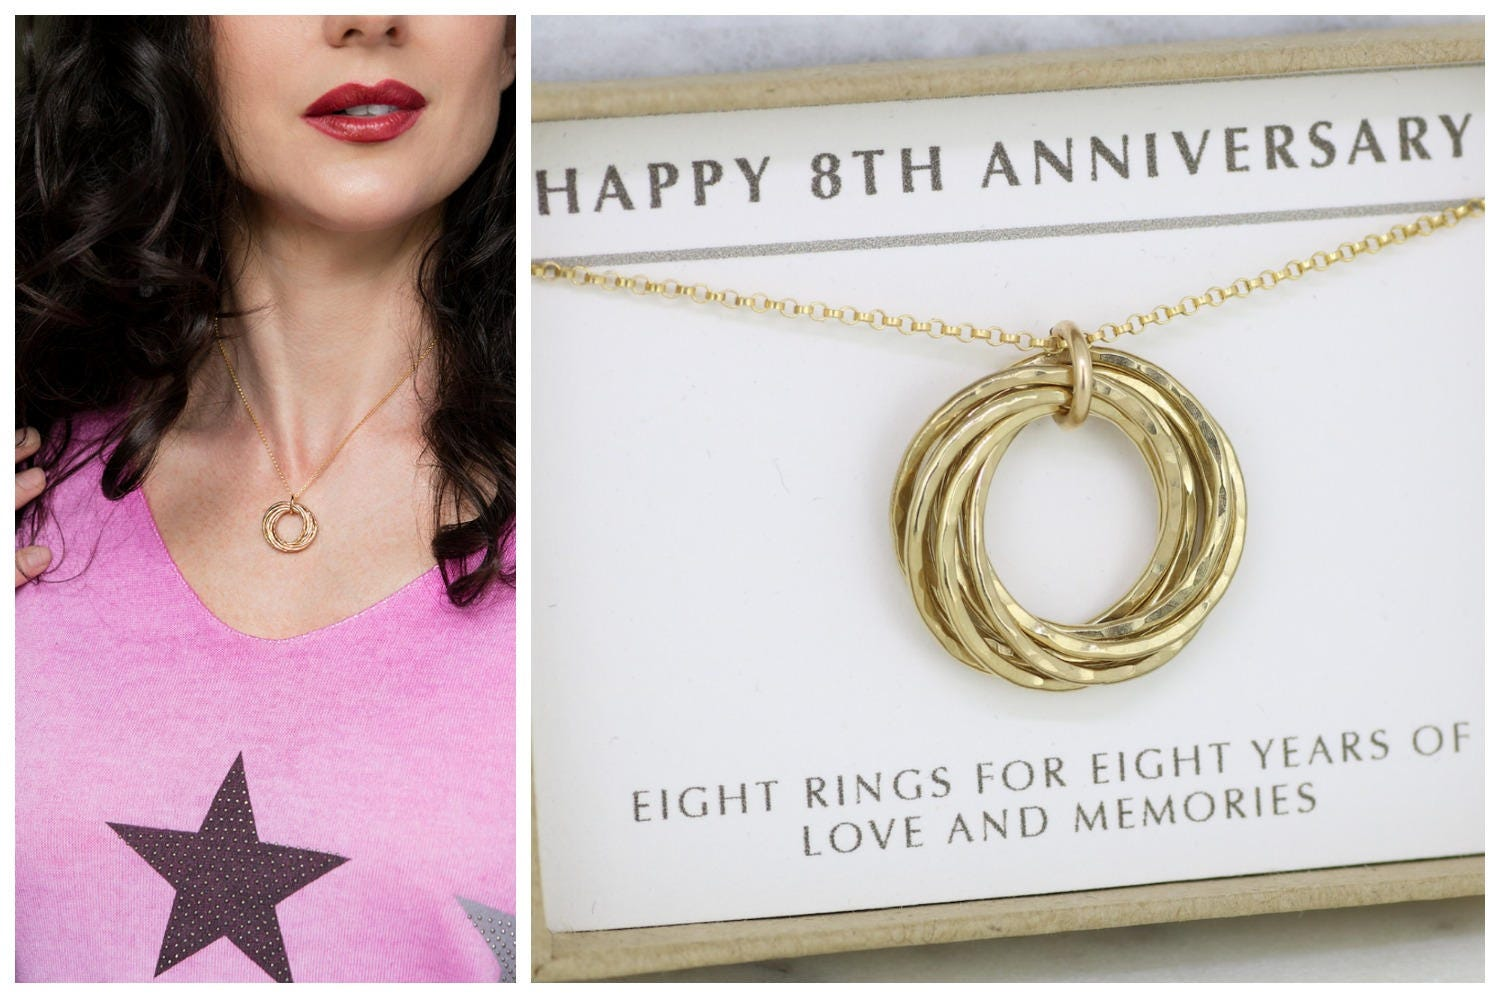 8th Anniversary Gift For Wife 8 Year Anniversary Necklace For Her Handmade Gift For Her